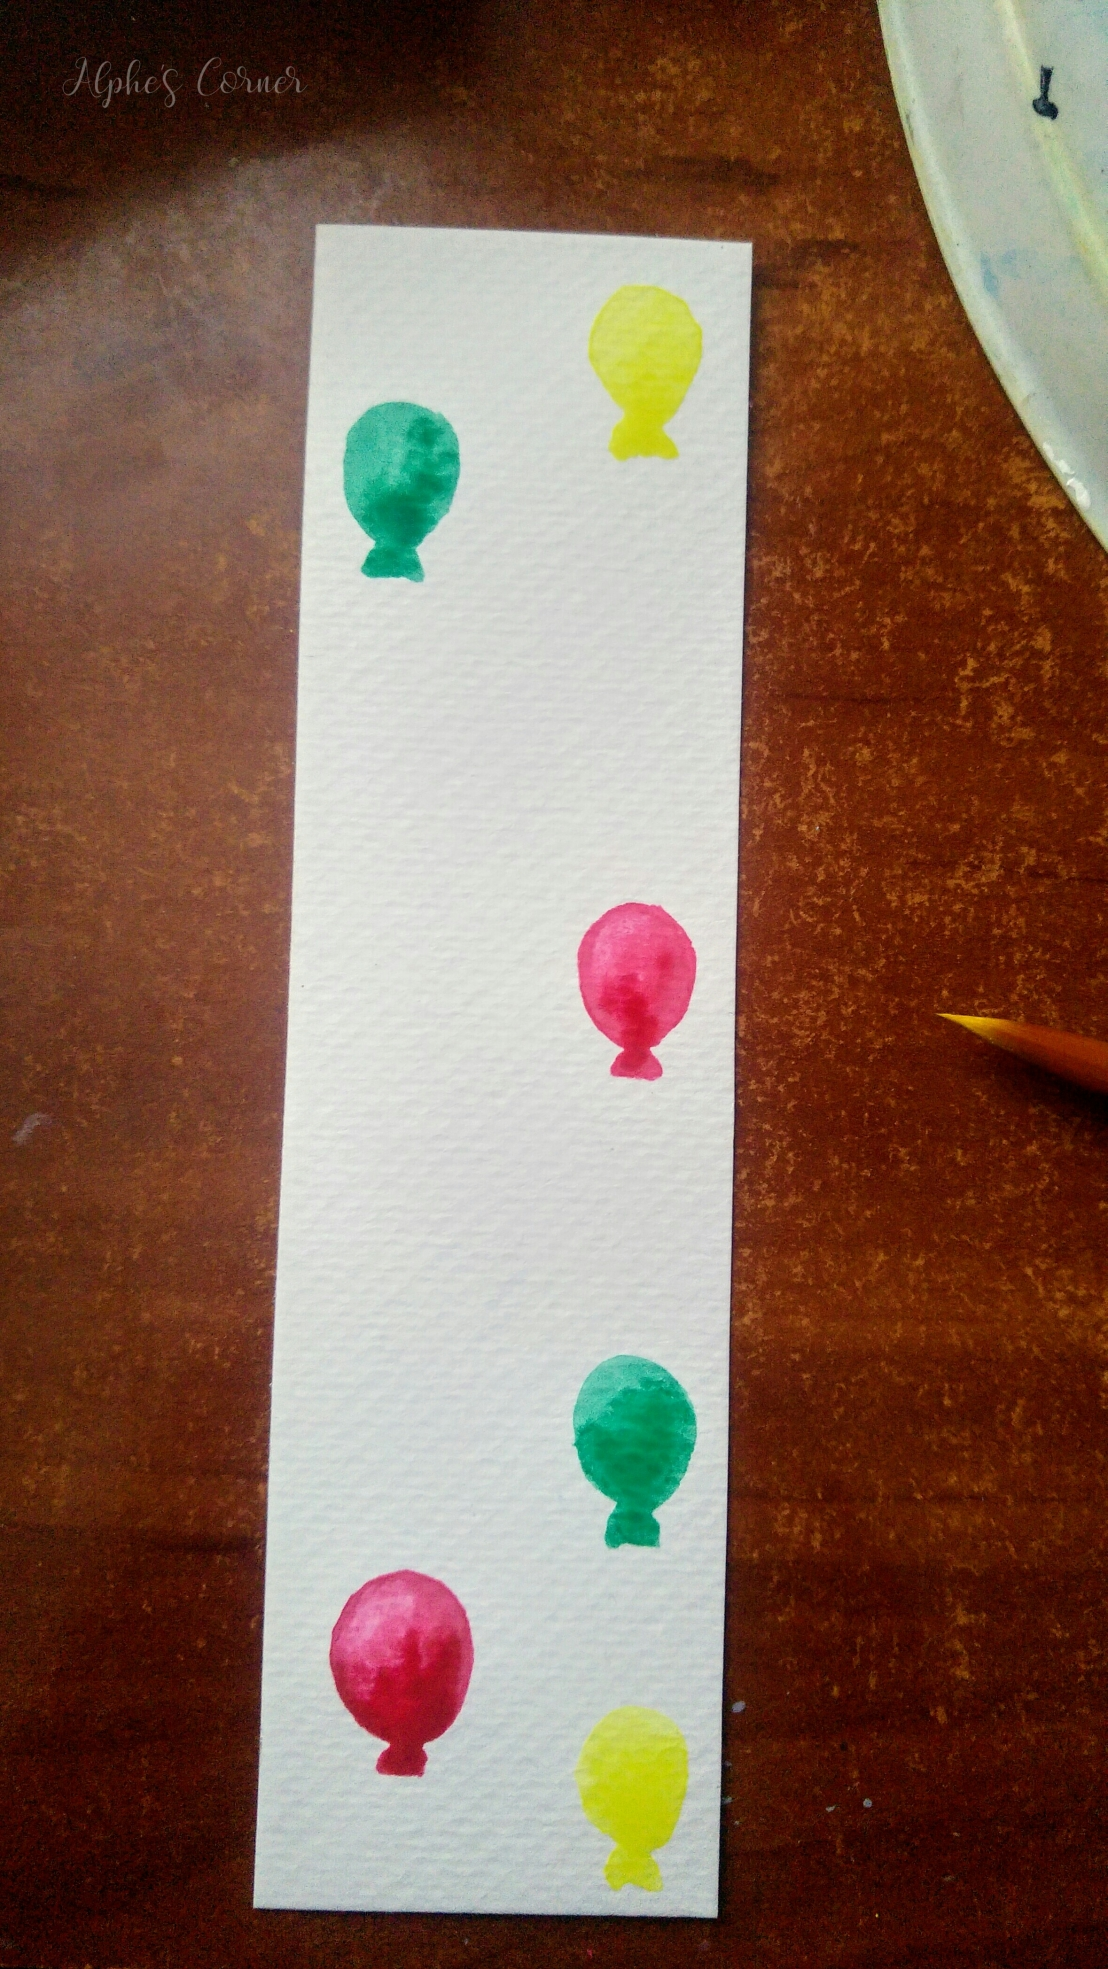 Painting the first balloons